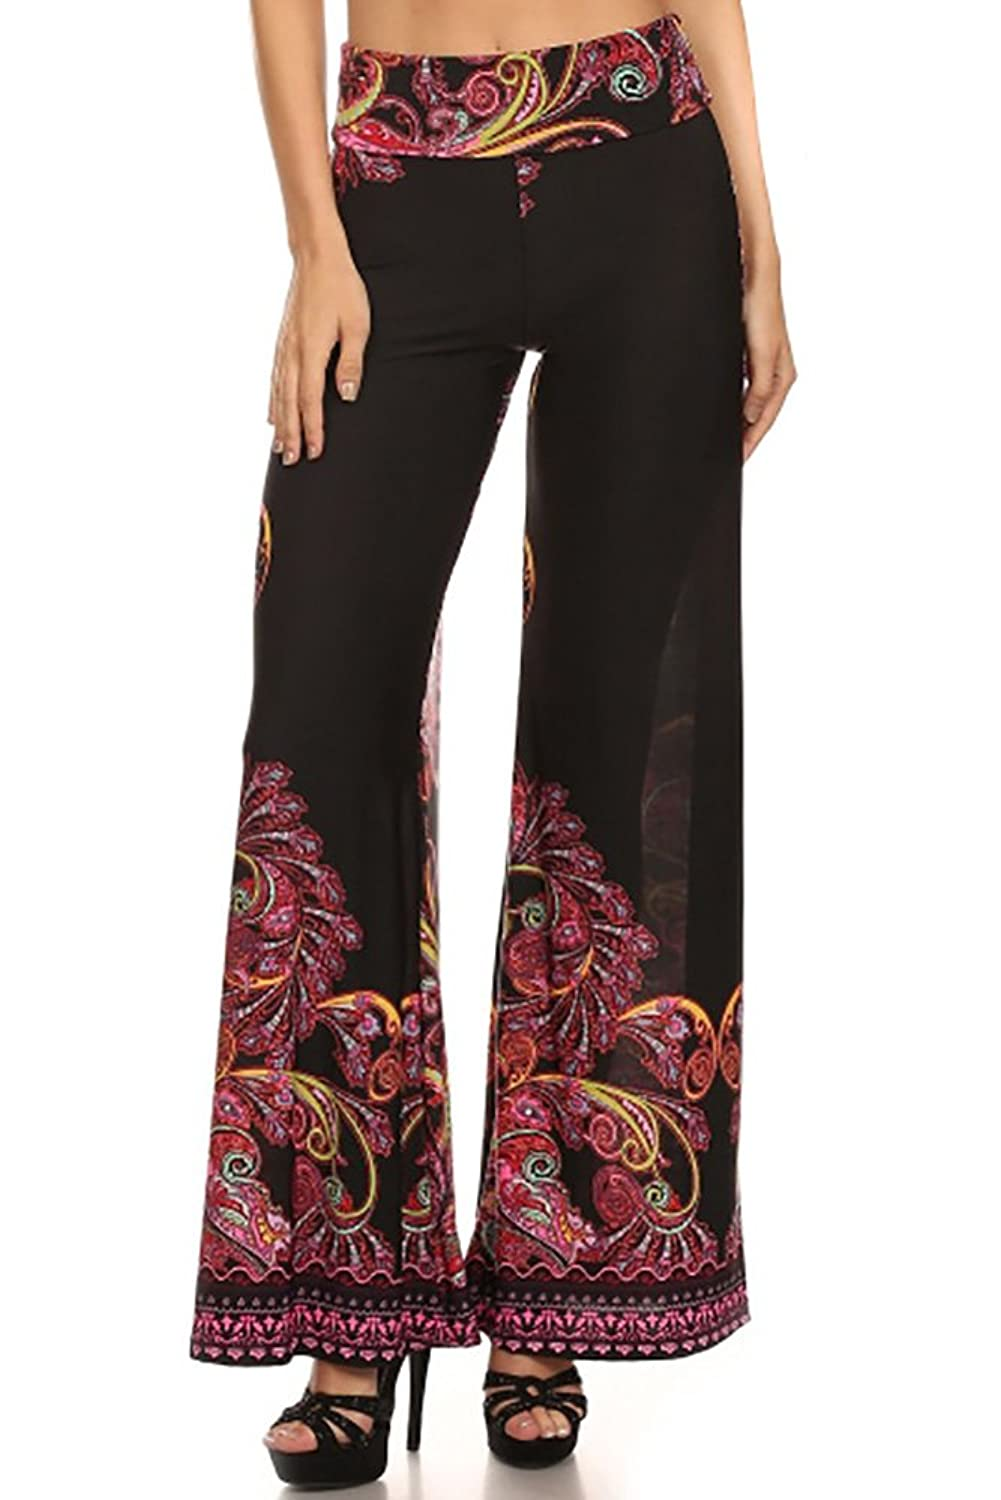 Betsy Red Couture Women's Plus Size High Waist Palazzo Pants